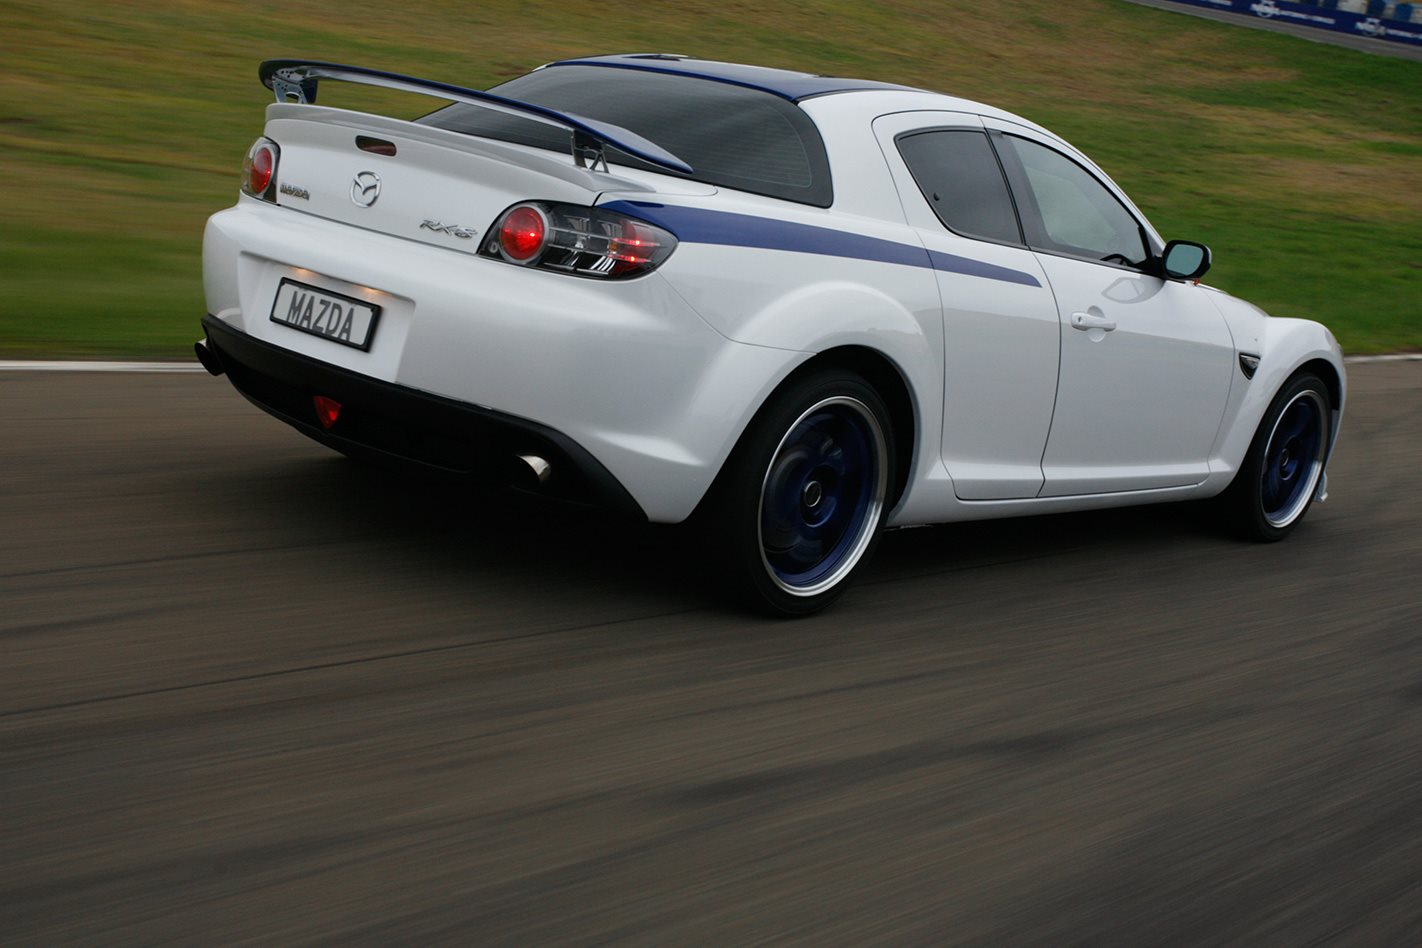 2009 Mazda RX-8 SP rear